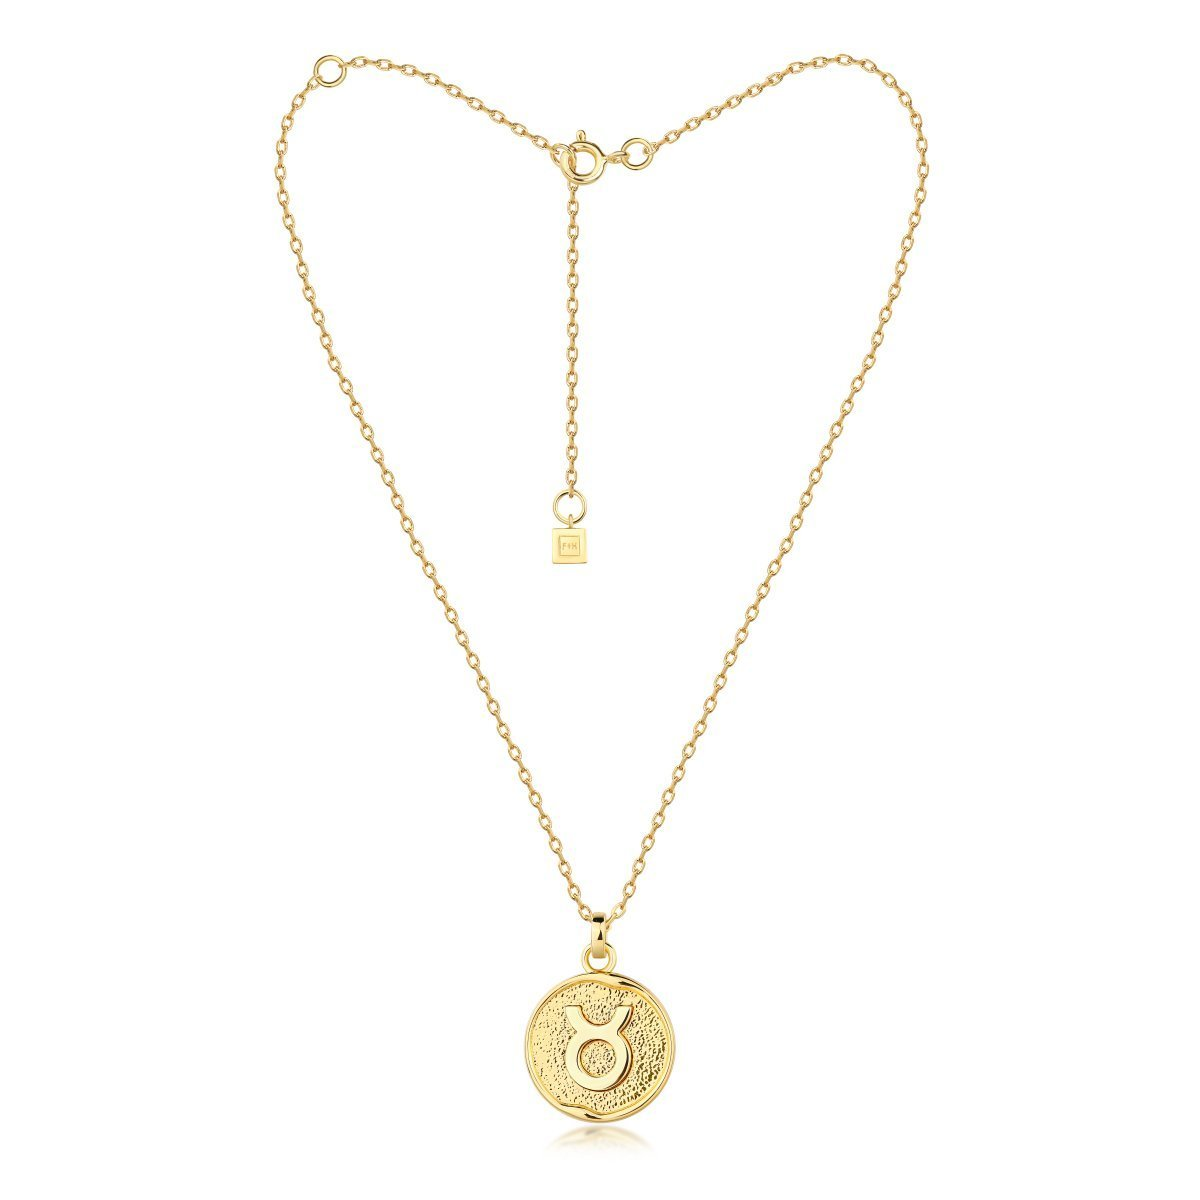 f + h jewellery - taurus necklace - gold